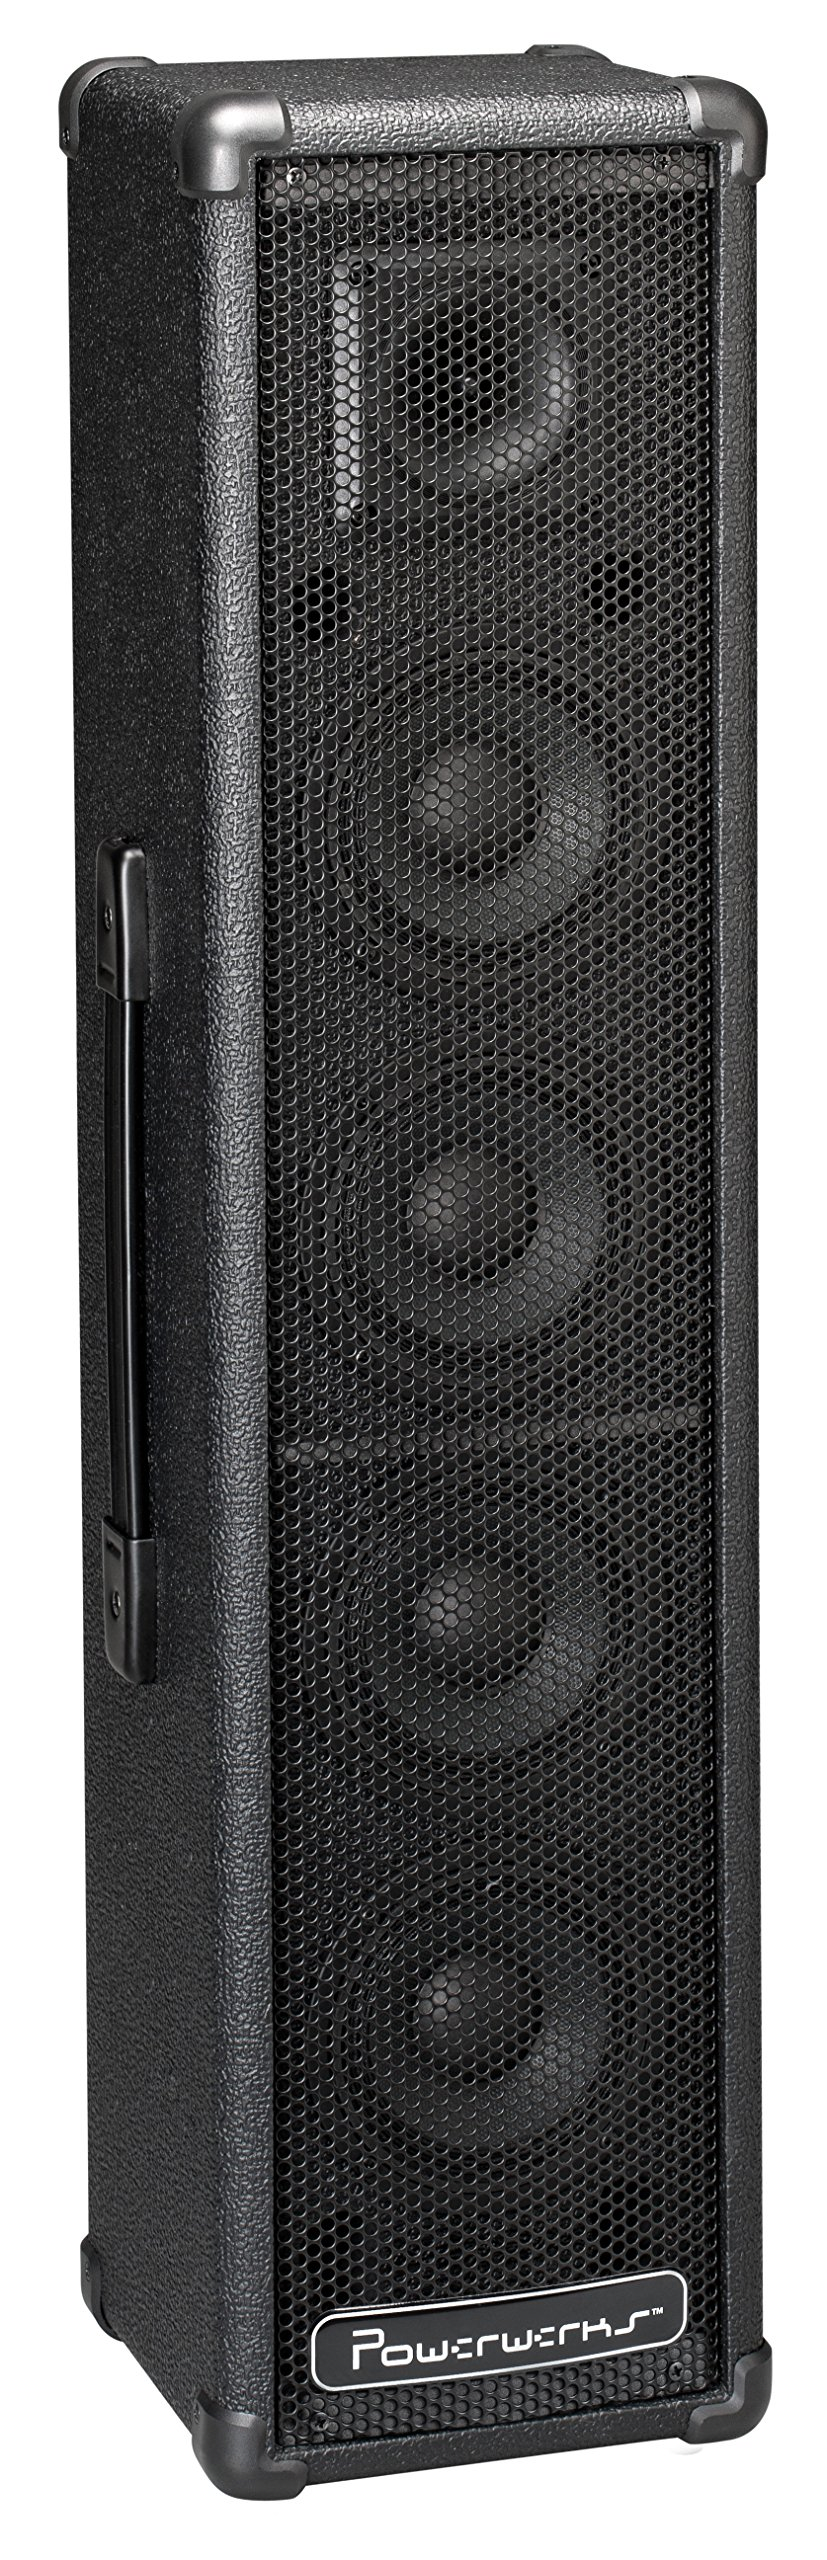 PowerWerks PW100BT 100 Watts RMS Personal PA System with Bluetooth